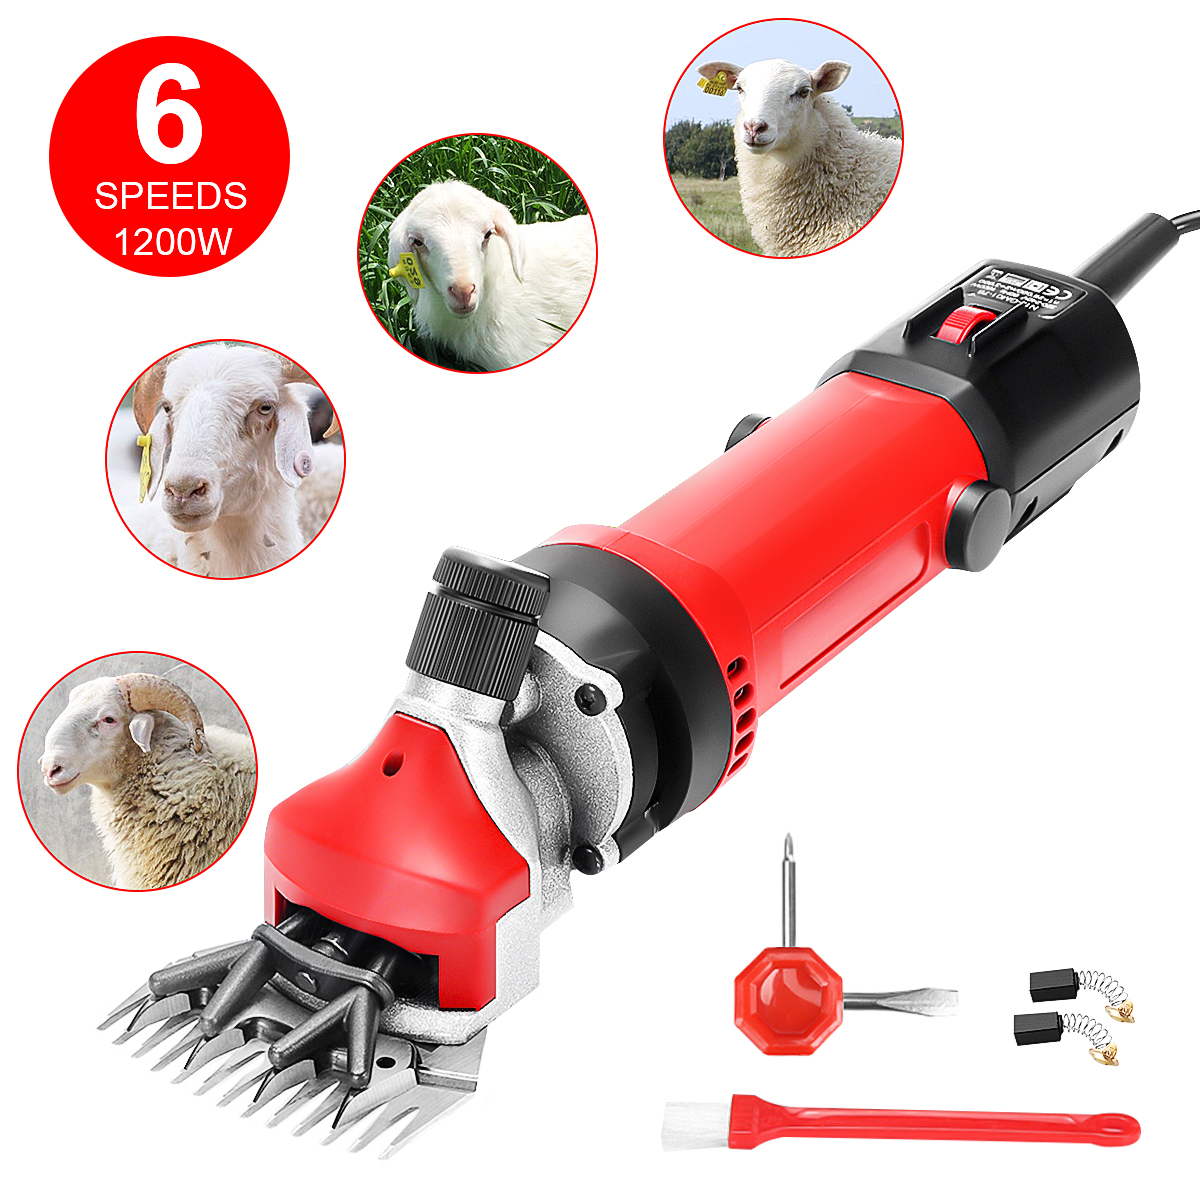 Details about  /Electric Horse Cattle Sheep Shearing Shears Clippers Grooming Trimmer 6-Speed